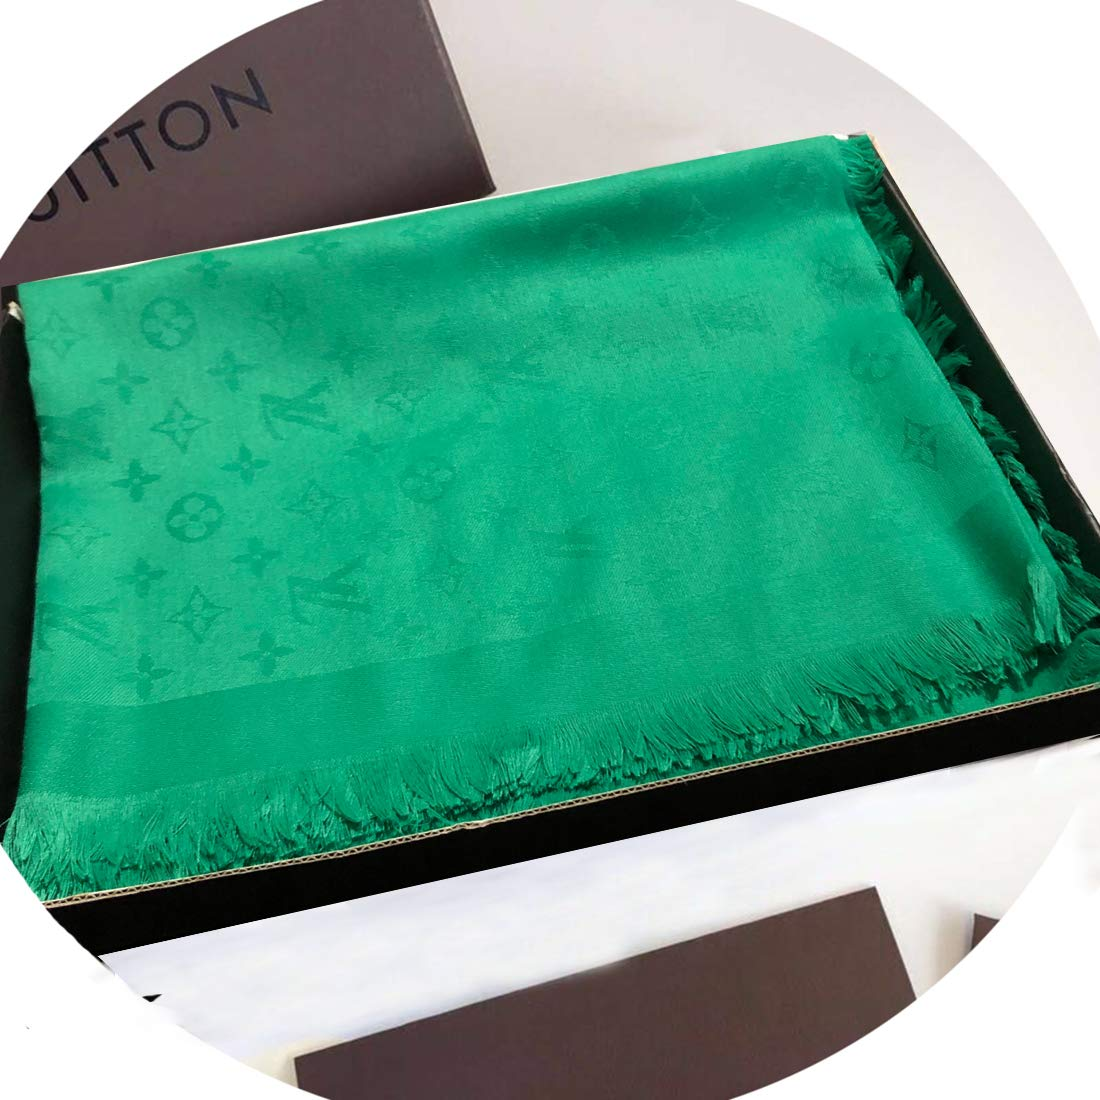 SCOBEE Fashion Luxury Cashmere/Wool Scarf Solid Green Warm Large Square Scarves for Women Men